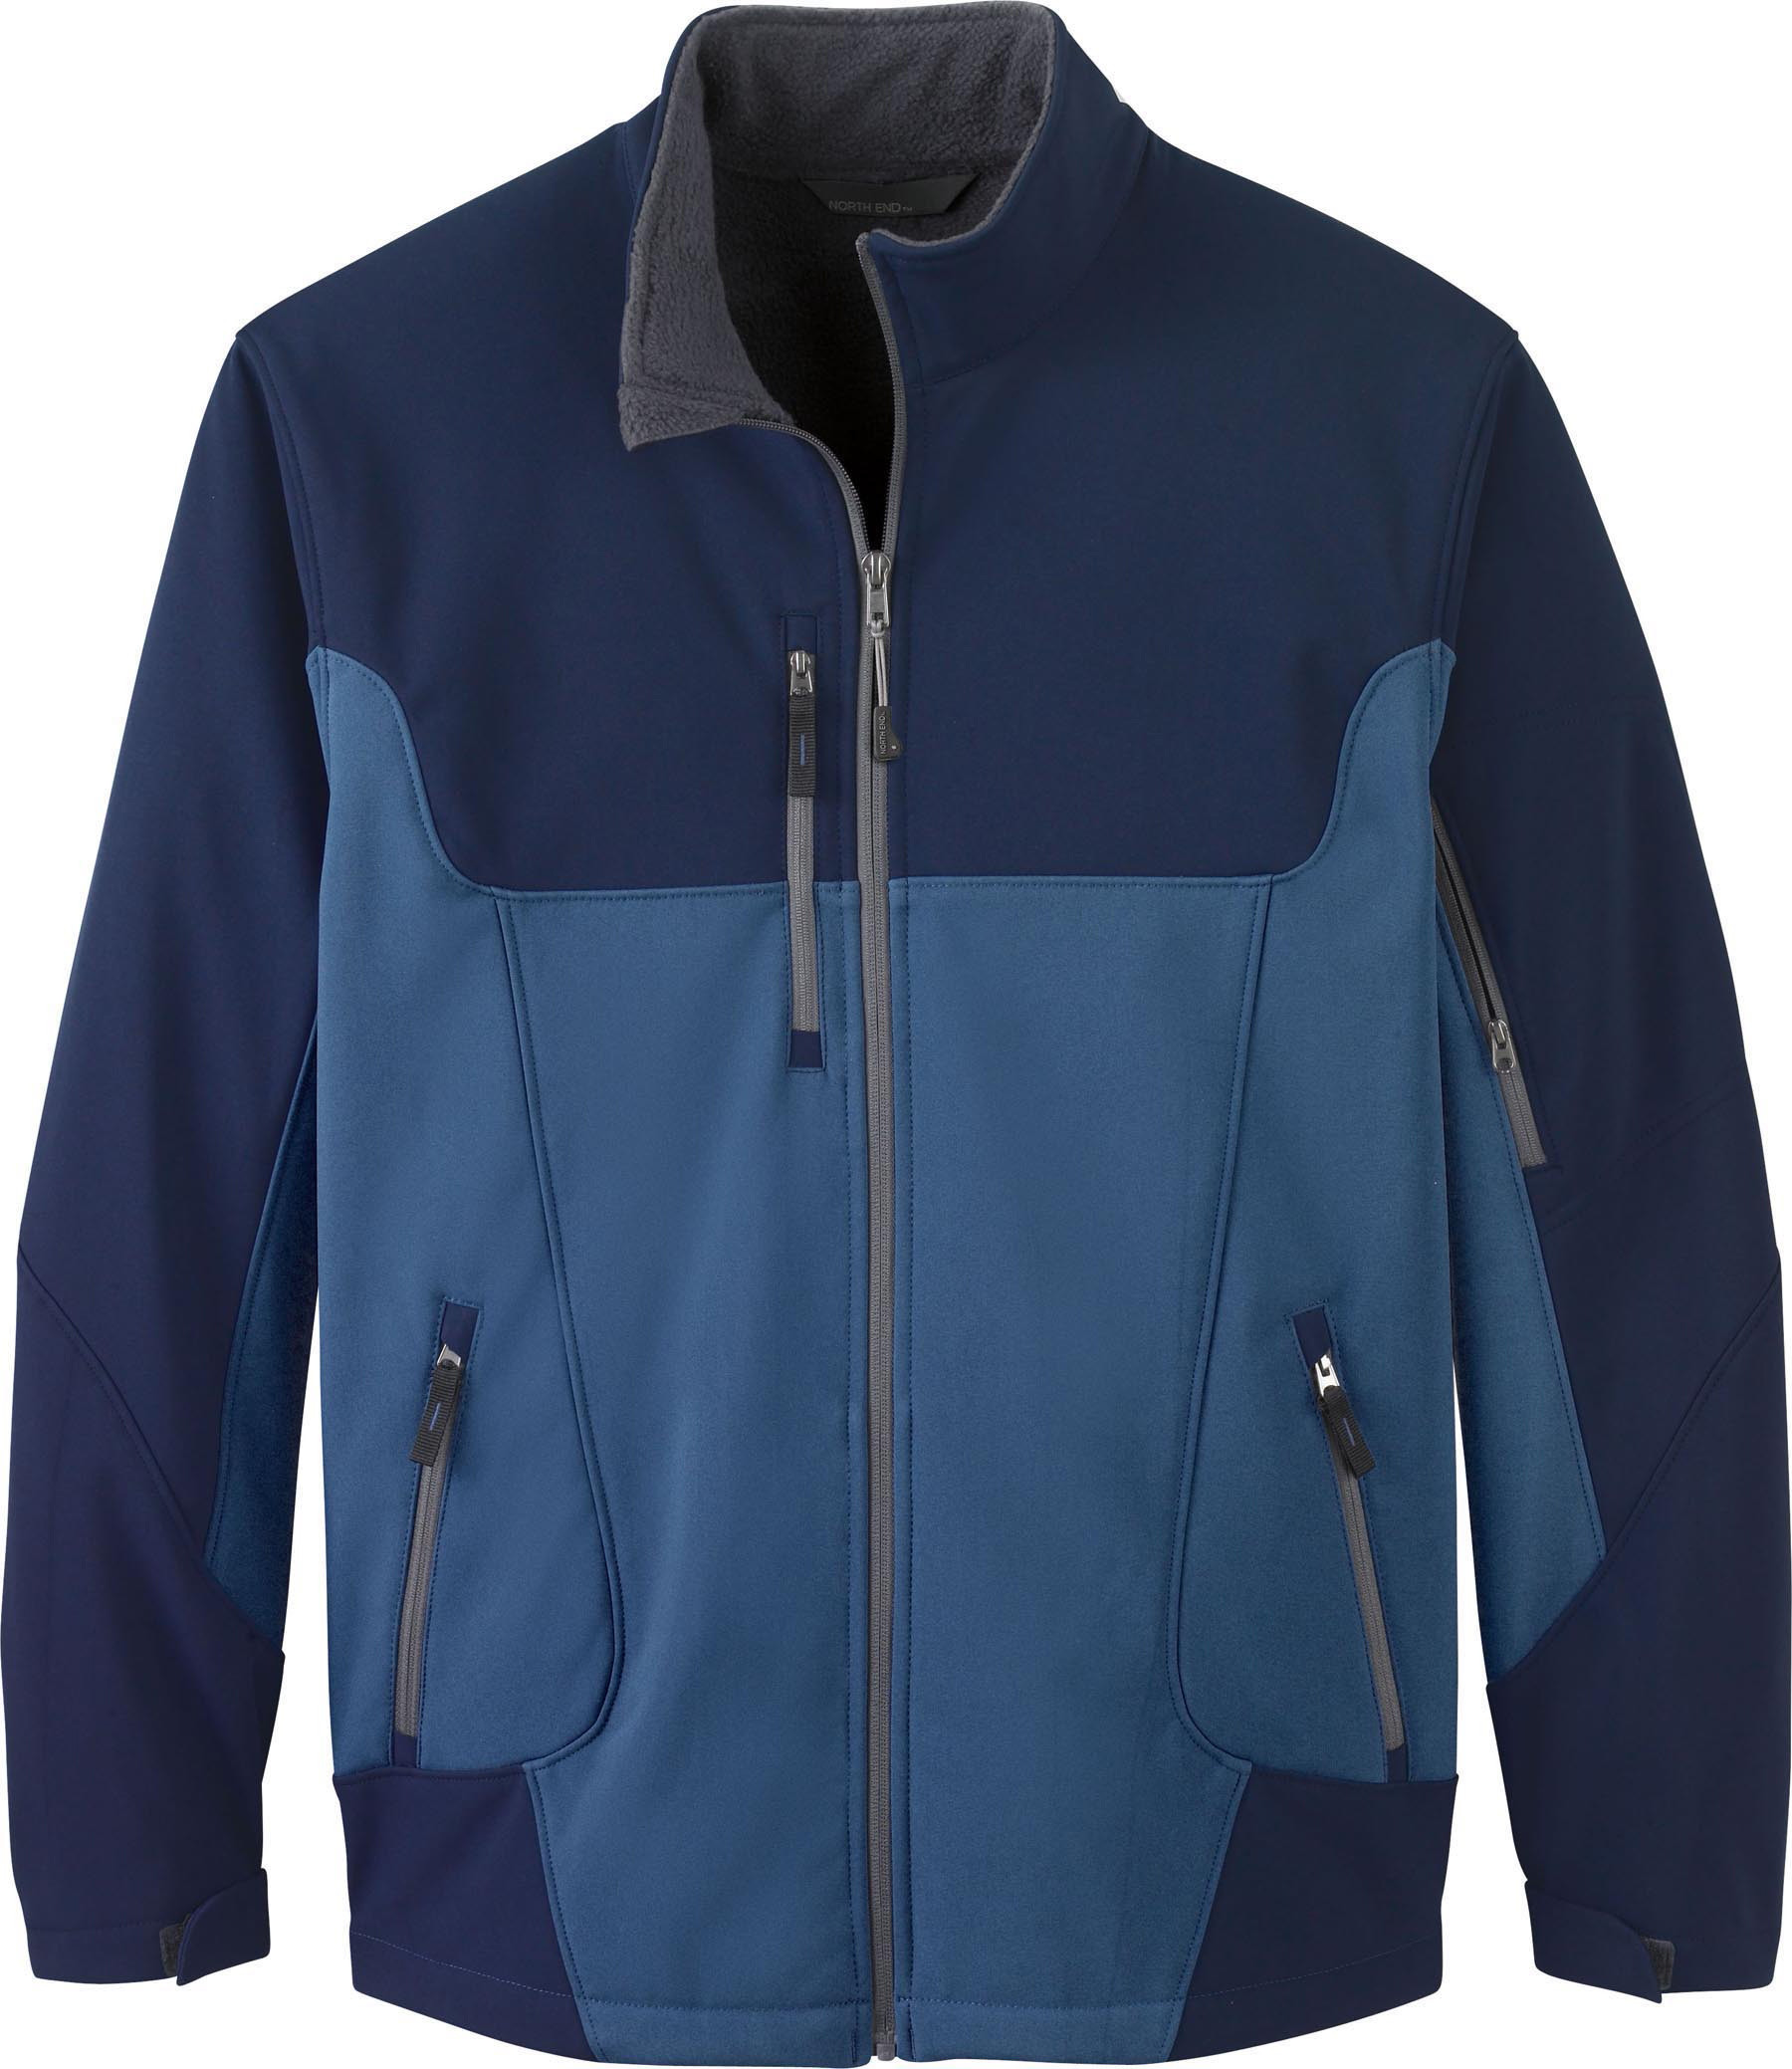 Ash City UTK 1 Warm.Logik 88156 - Compass Men's Color-Block Soft Shell Jacket